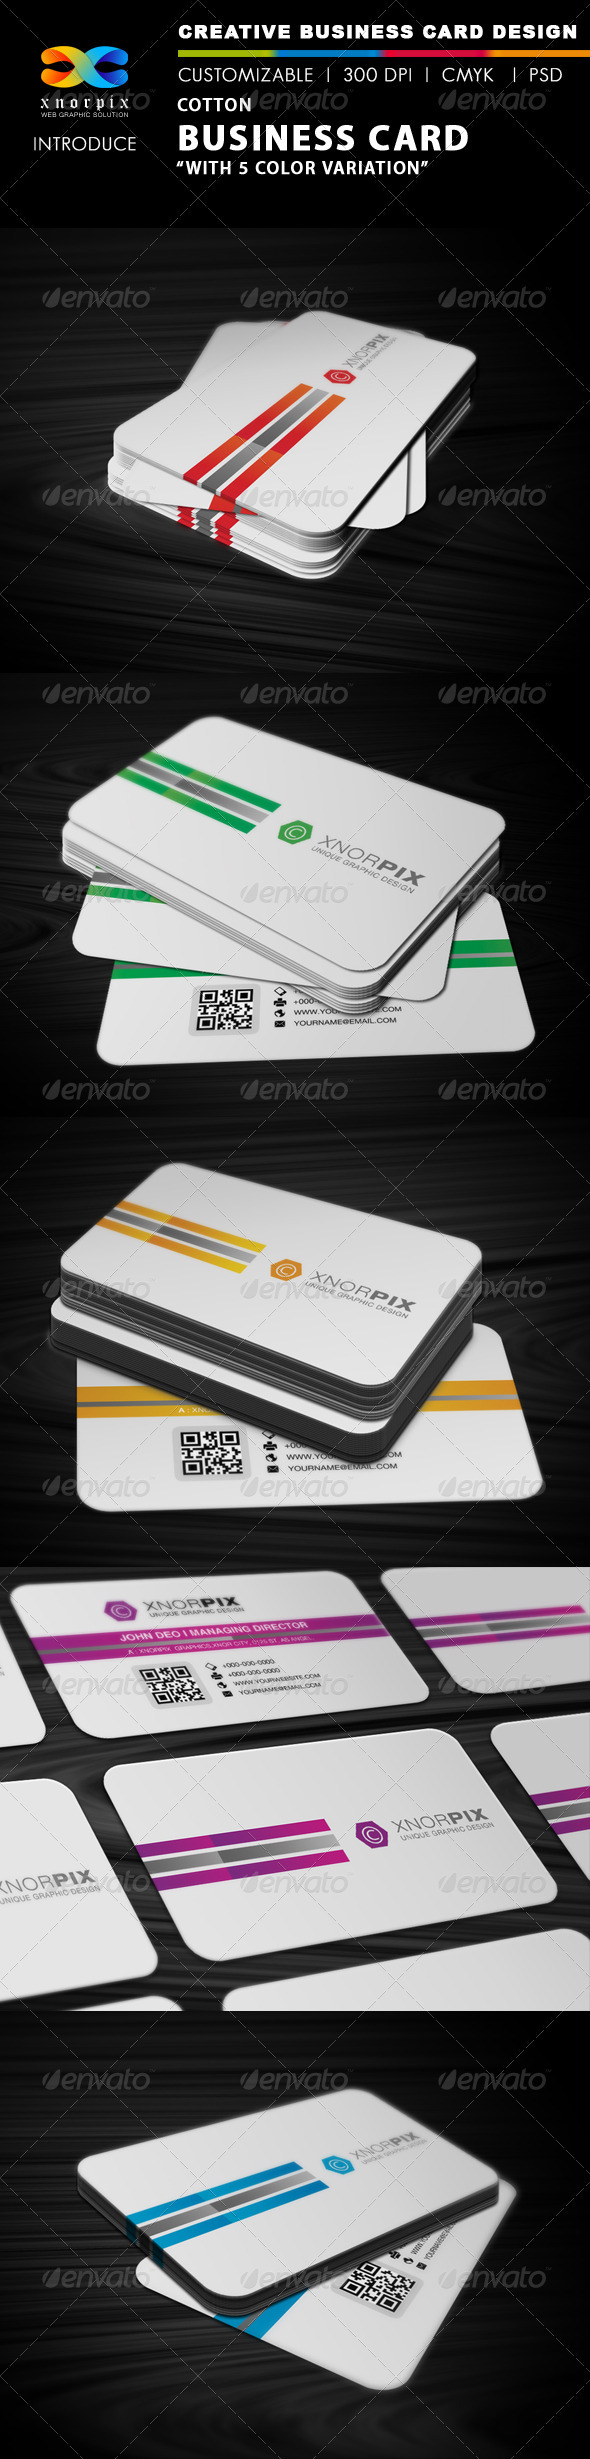 Cotton Business Card - Corporate Business Cards